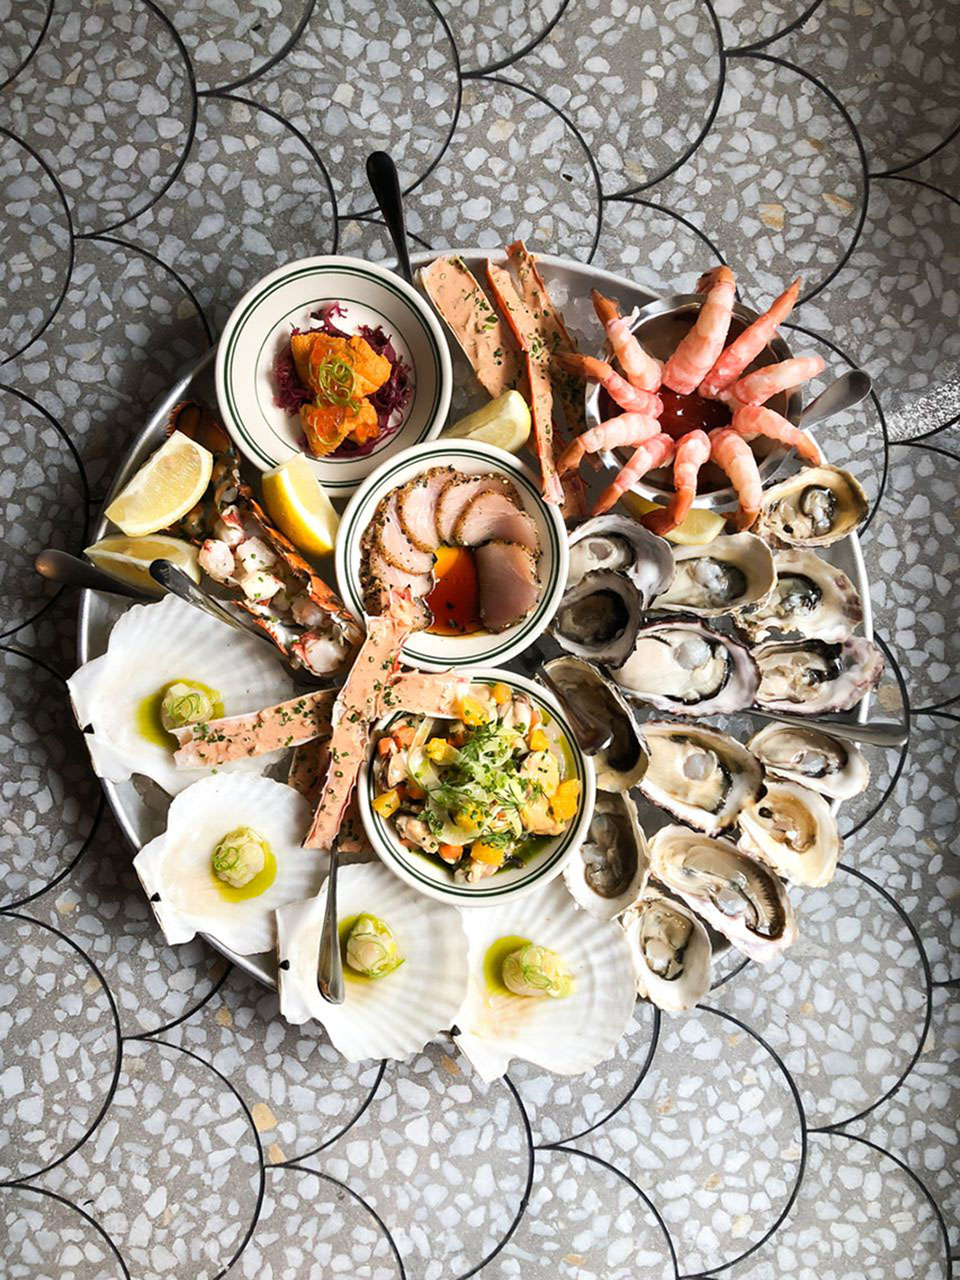 COQUILLE FINE SEAFOOD NOW OPEN IN THE HEARTOF Gastown - FEBRUARY 13, 2018The winning team behind Gastown's L'Abattoir has officially opened the doors of Coquille Fine Seafood, its latest venture located only a stone's throw away at 181 Carrall Street.Open for lunch, dinner, and late-night drinks seven days a week, Coquille (French for 'shell') serves up a bounty of fresh-caught seafood and shellfish dishes, a selection of hot and cold small plates, salads, sandwiches and crudos, seafood platters, and mains featuring the best of local land and sea.The beverage program, features an array of local craft beer, house-made cocktails, and a notable list of BC and international wines. Check out their website. Read more.